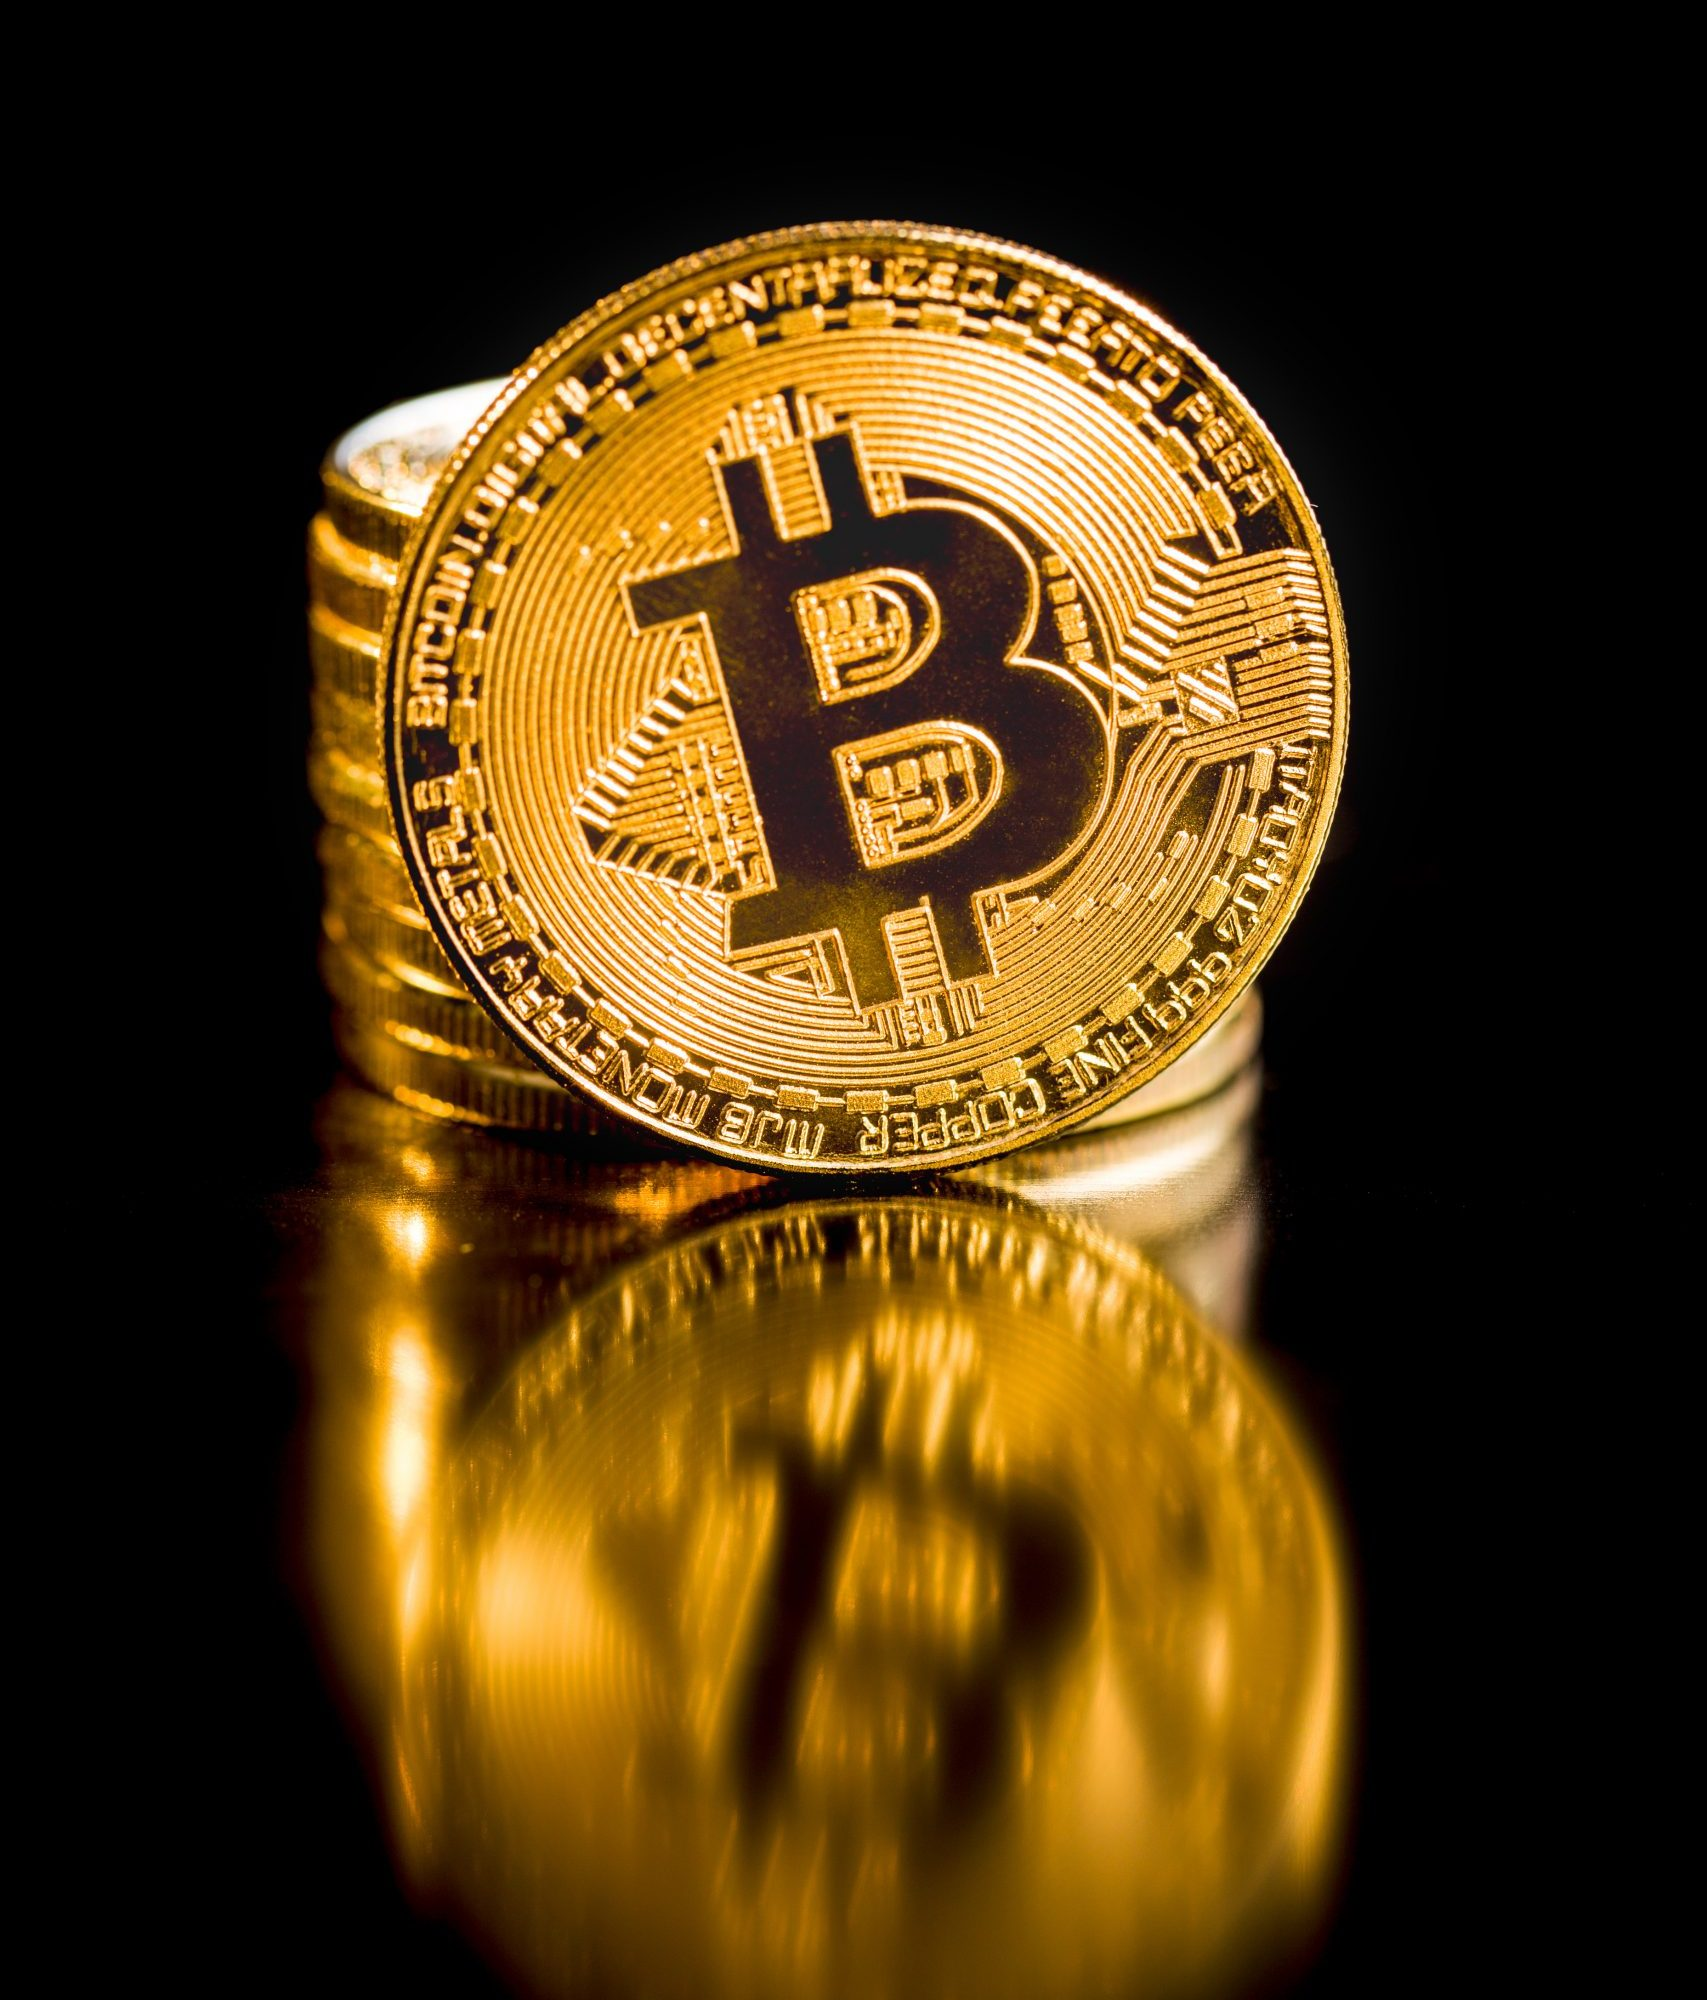 Golden bitcoins. Cryptocurrency on black background.